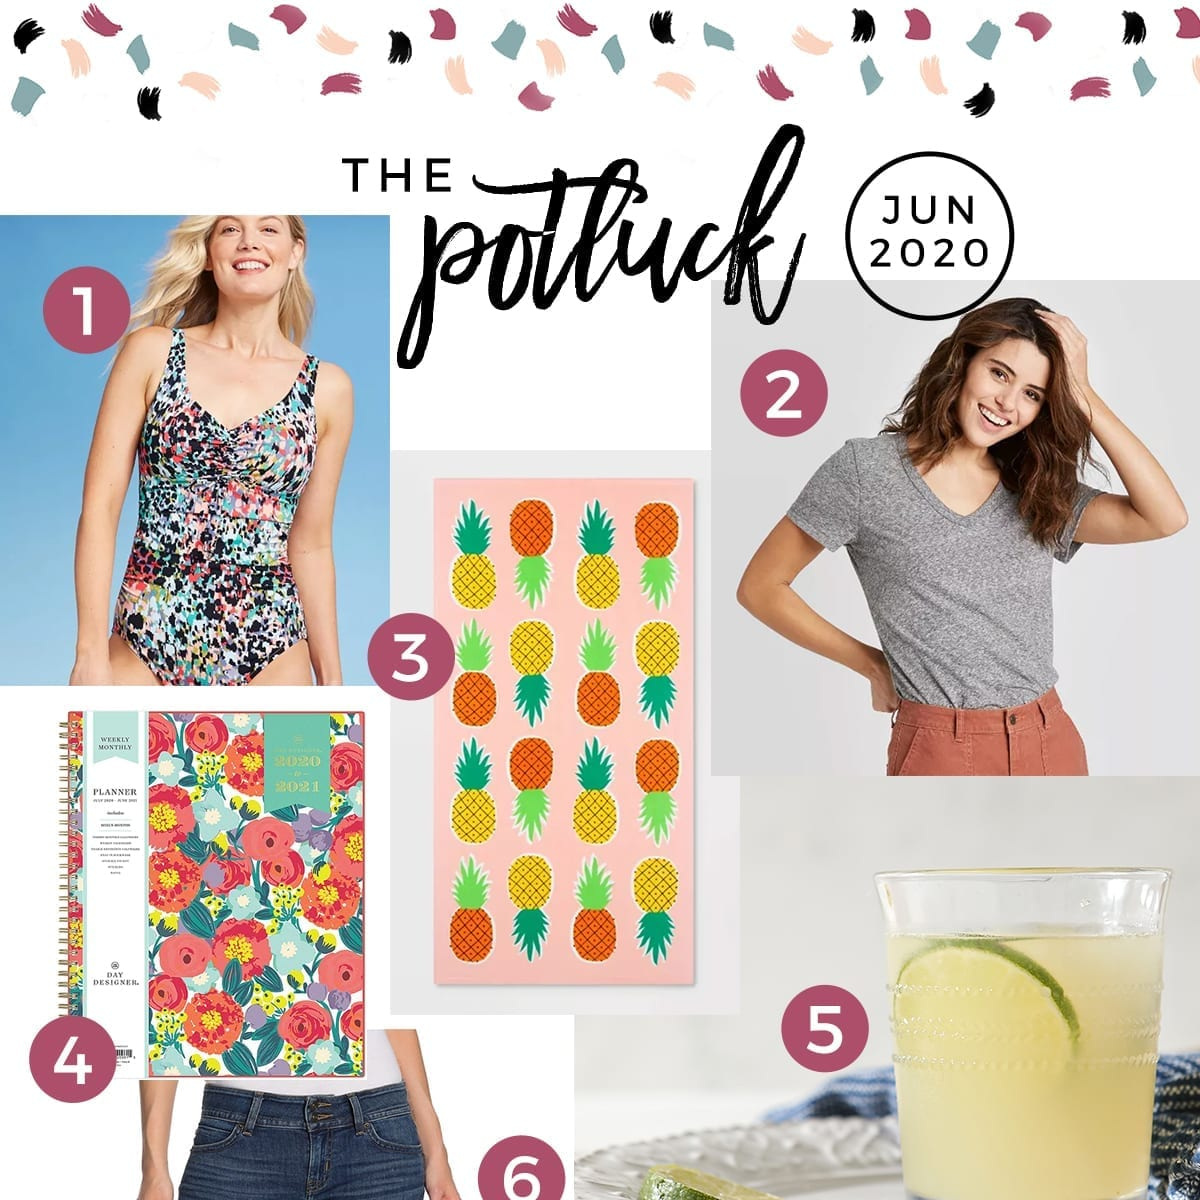 Square collage for the Potluck June 2020, featuring clothing and summery items